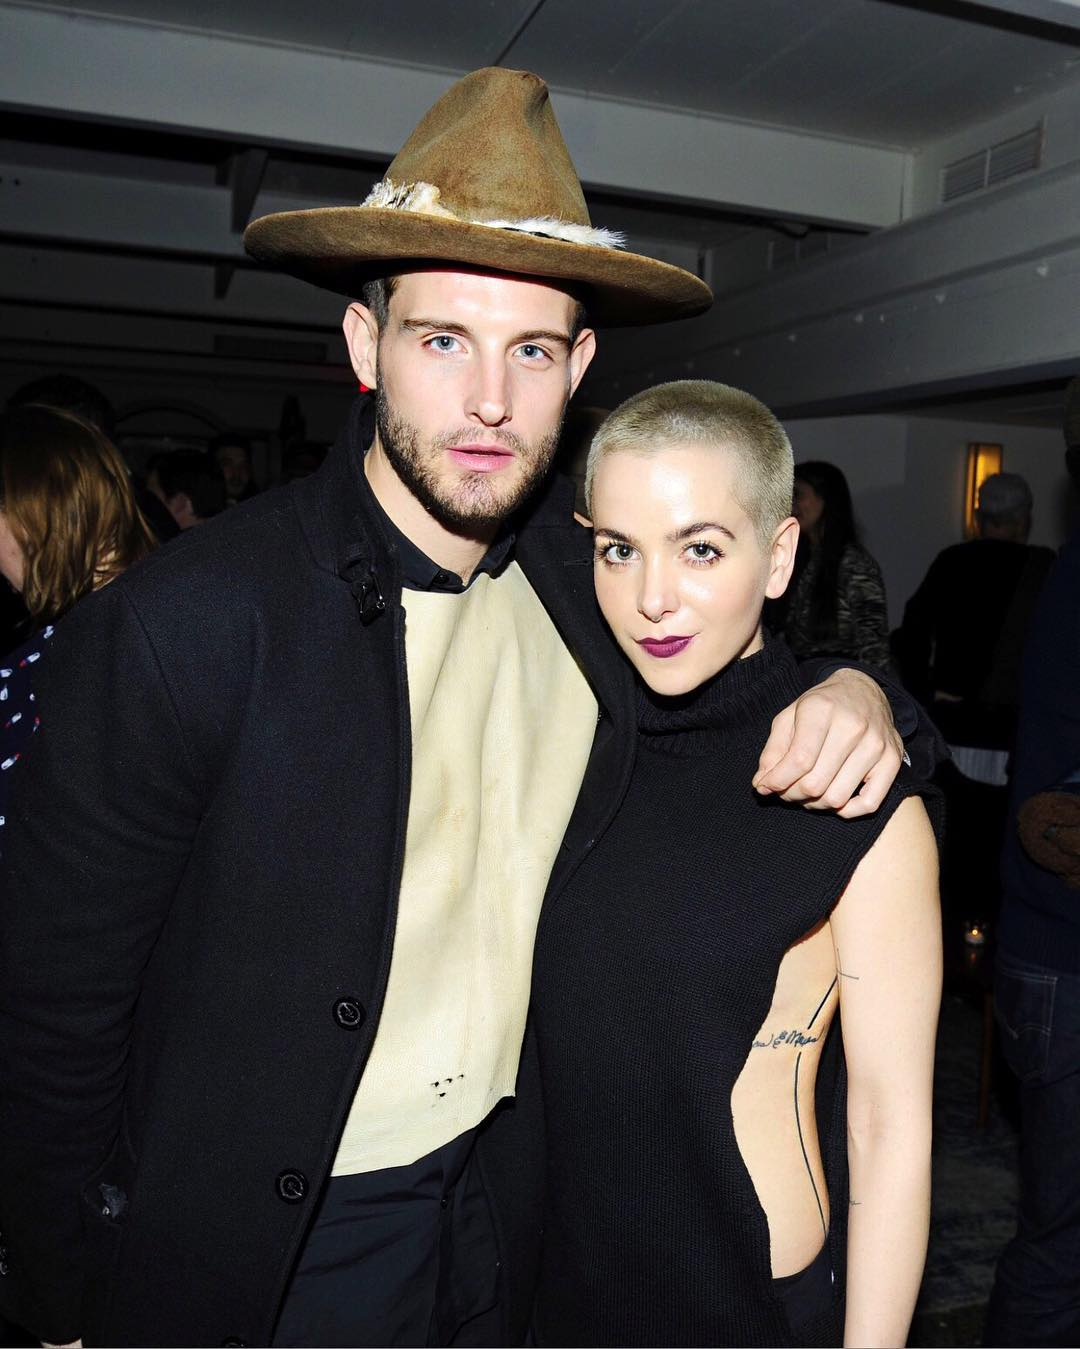 Actor Nico Tortorella marries partner Bethany Meyers (Photos)